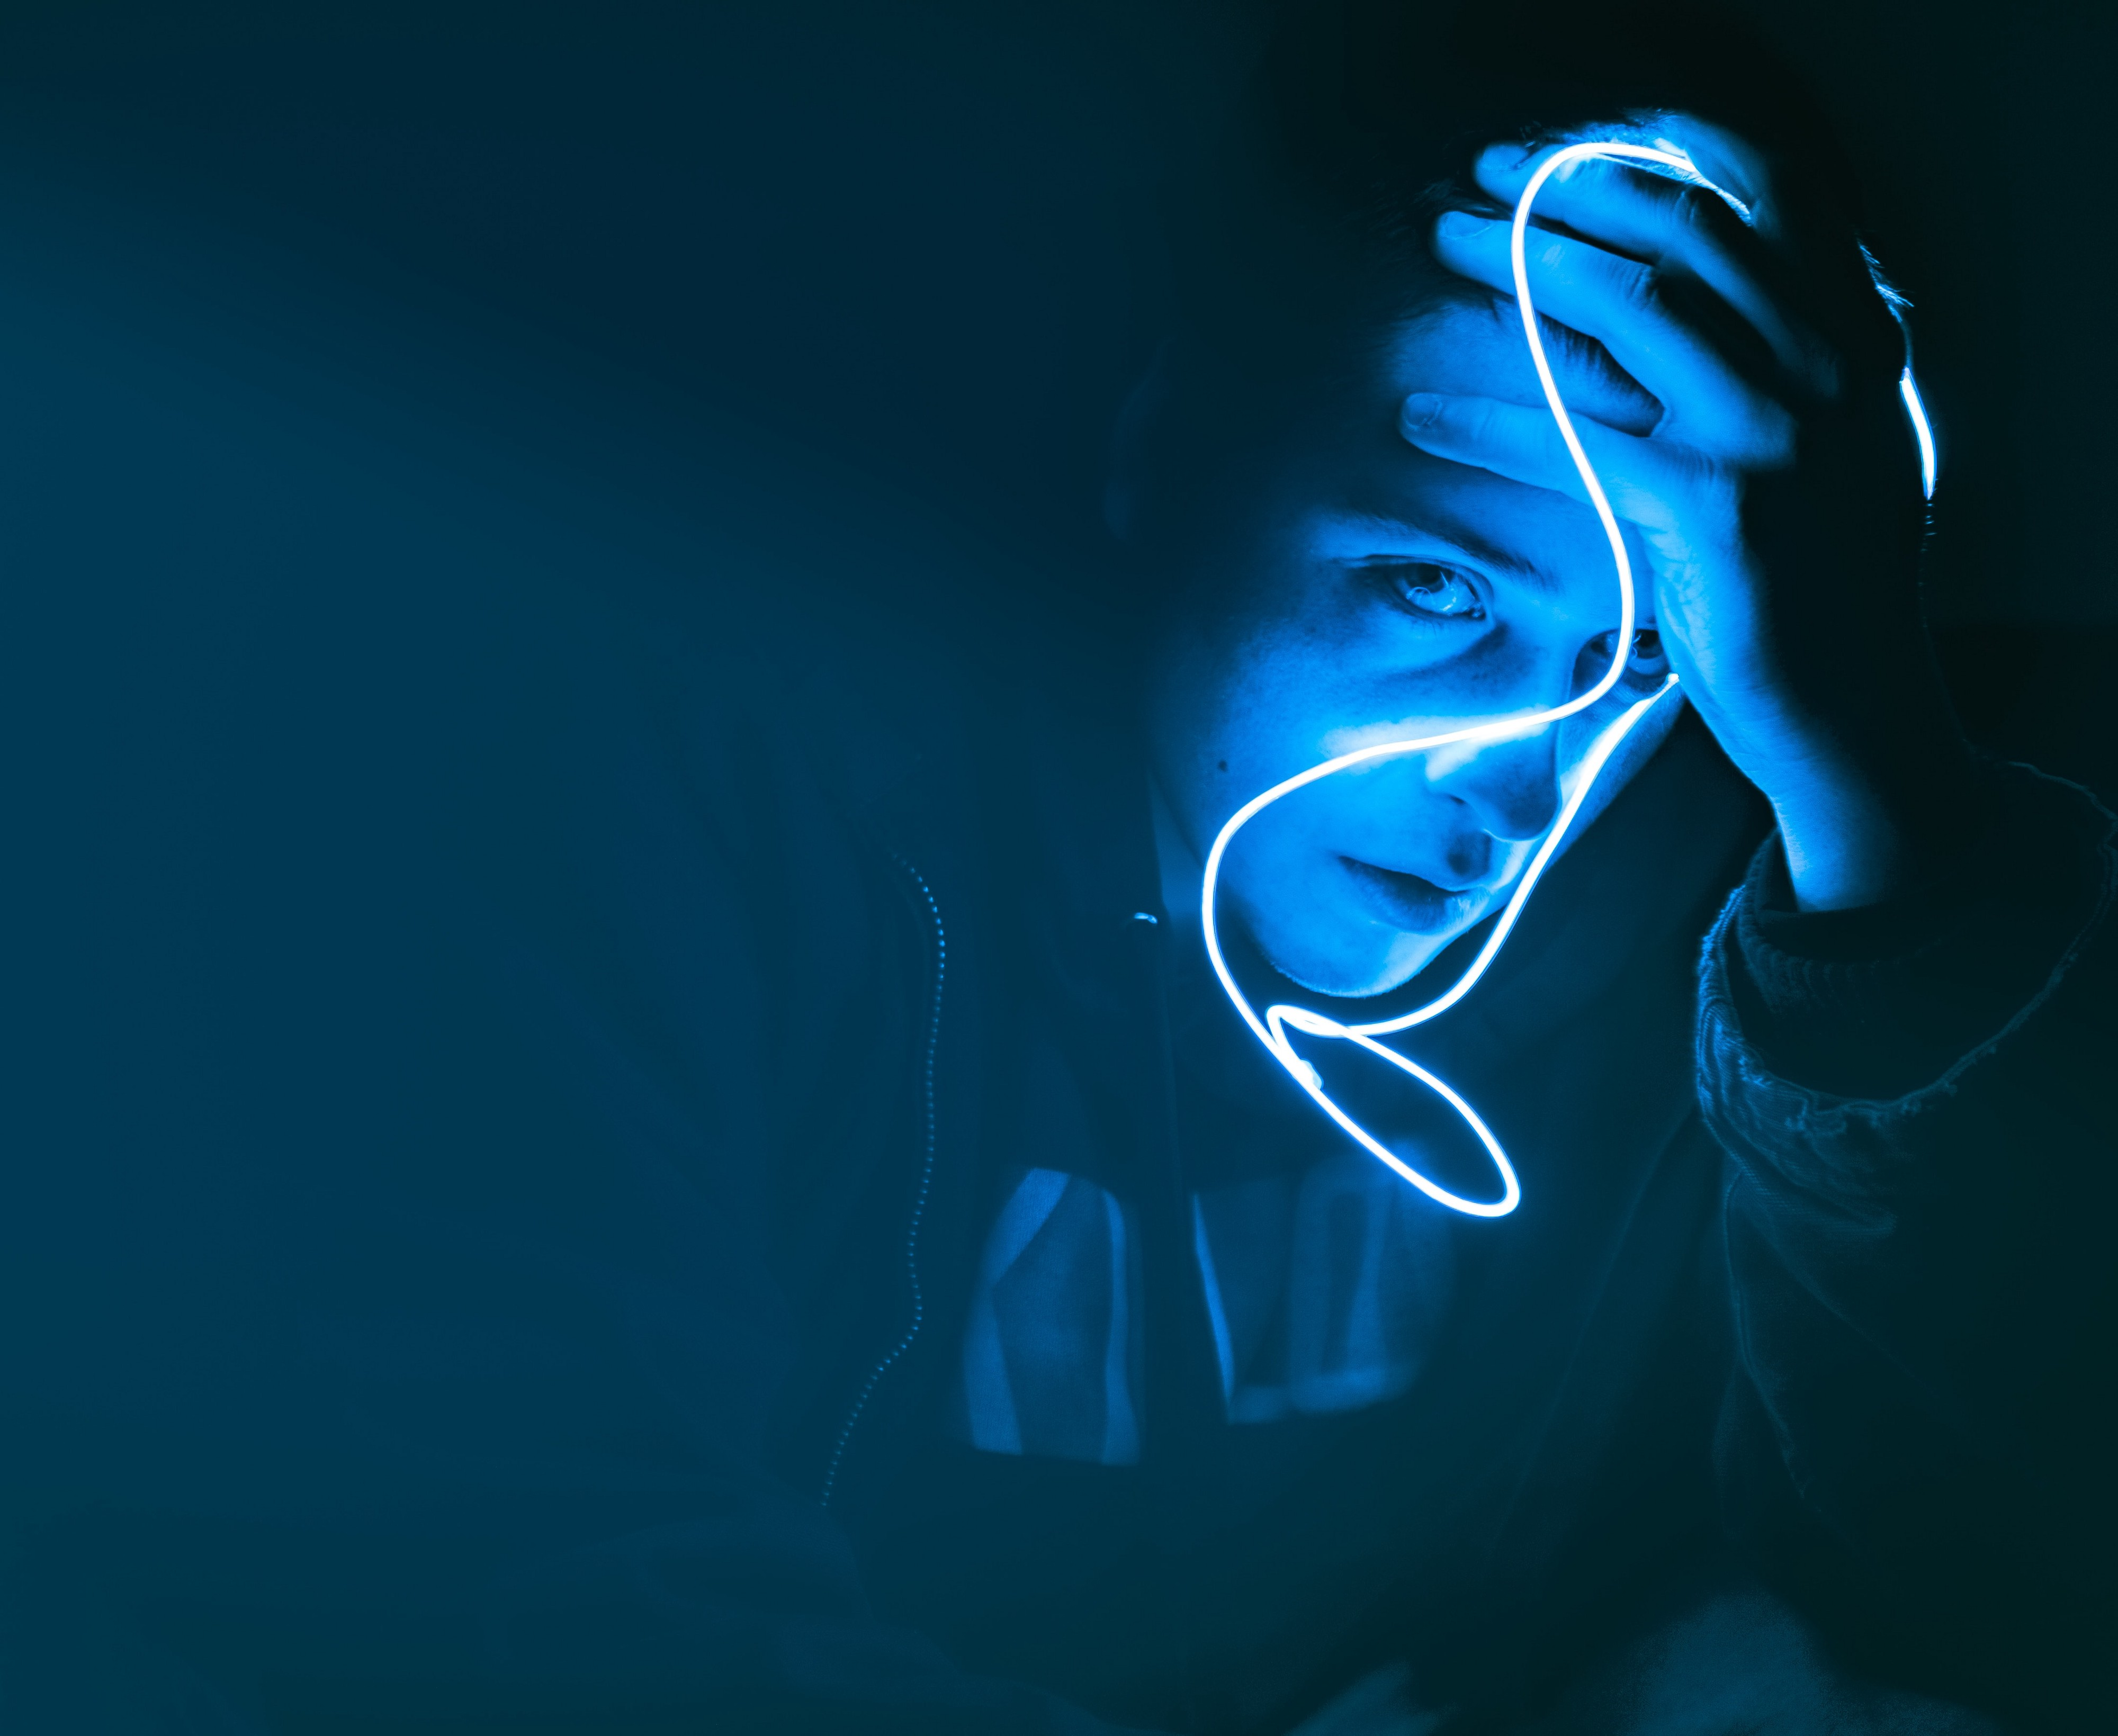 Person in a dark background with a cobalt blue light on their face, looking despondently at the camera.